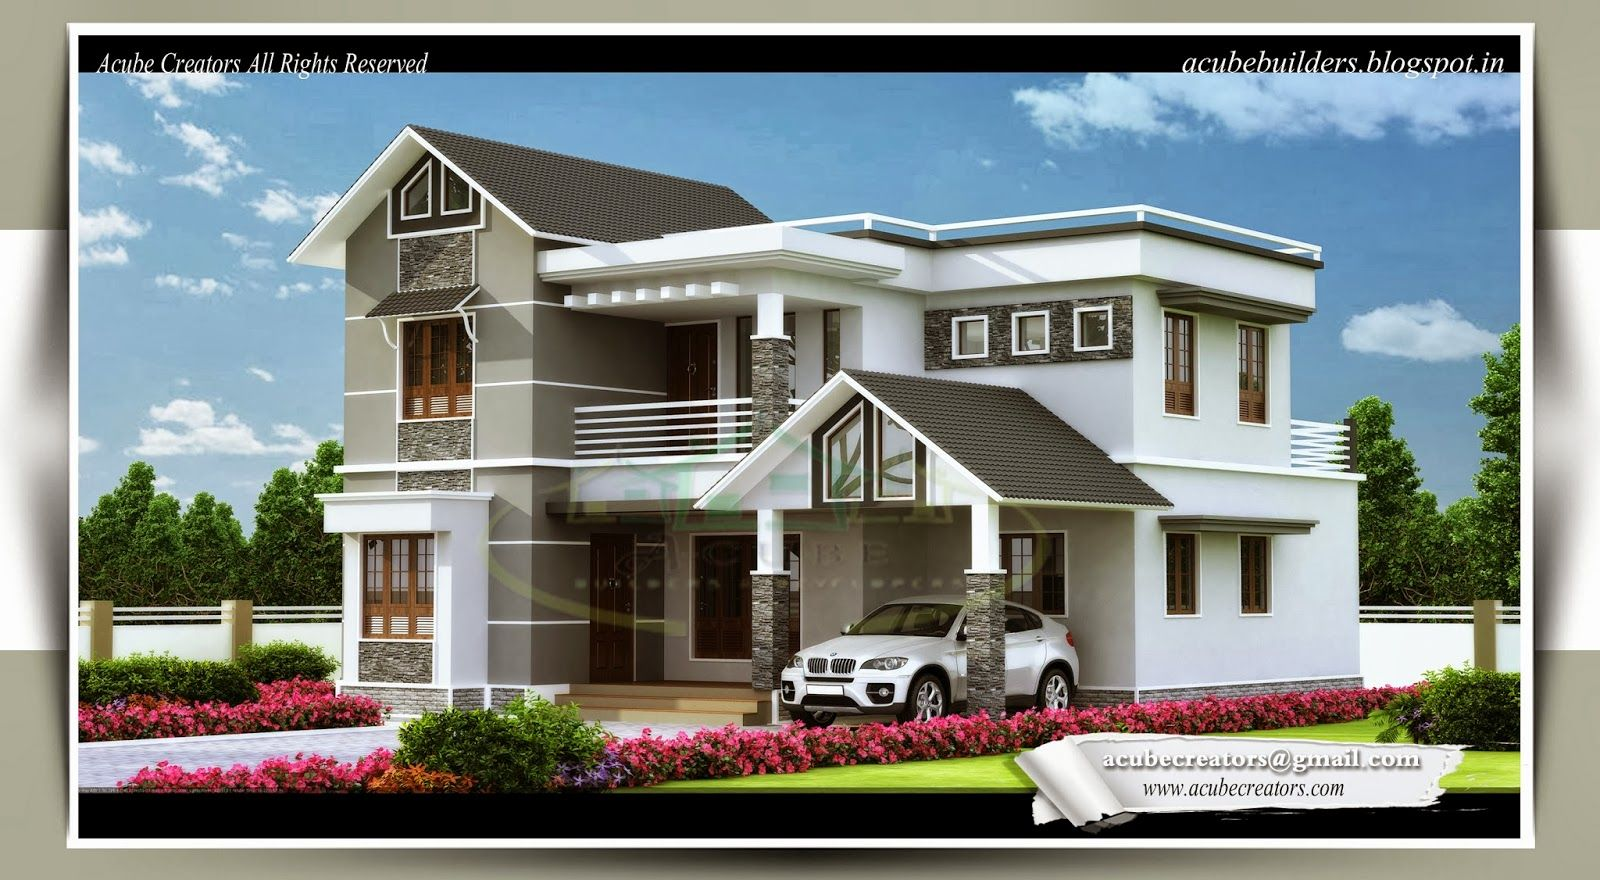 Home Design Pictures Impressive Home Design Gallery Fresh Ideas Kerala Home Design Photos  Home . Inspiration